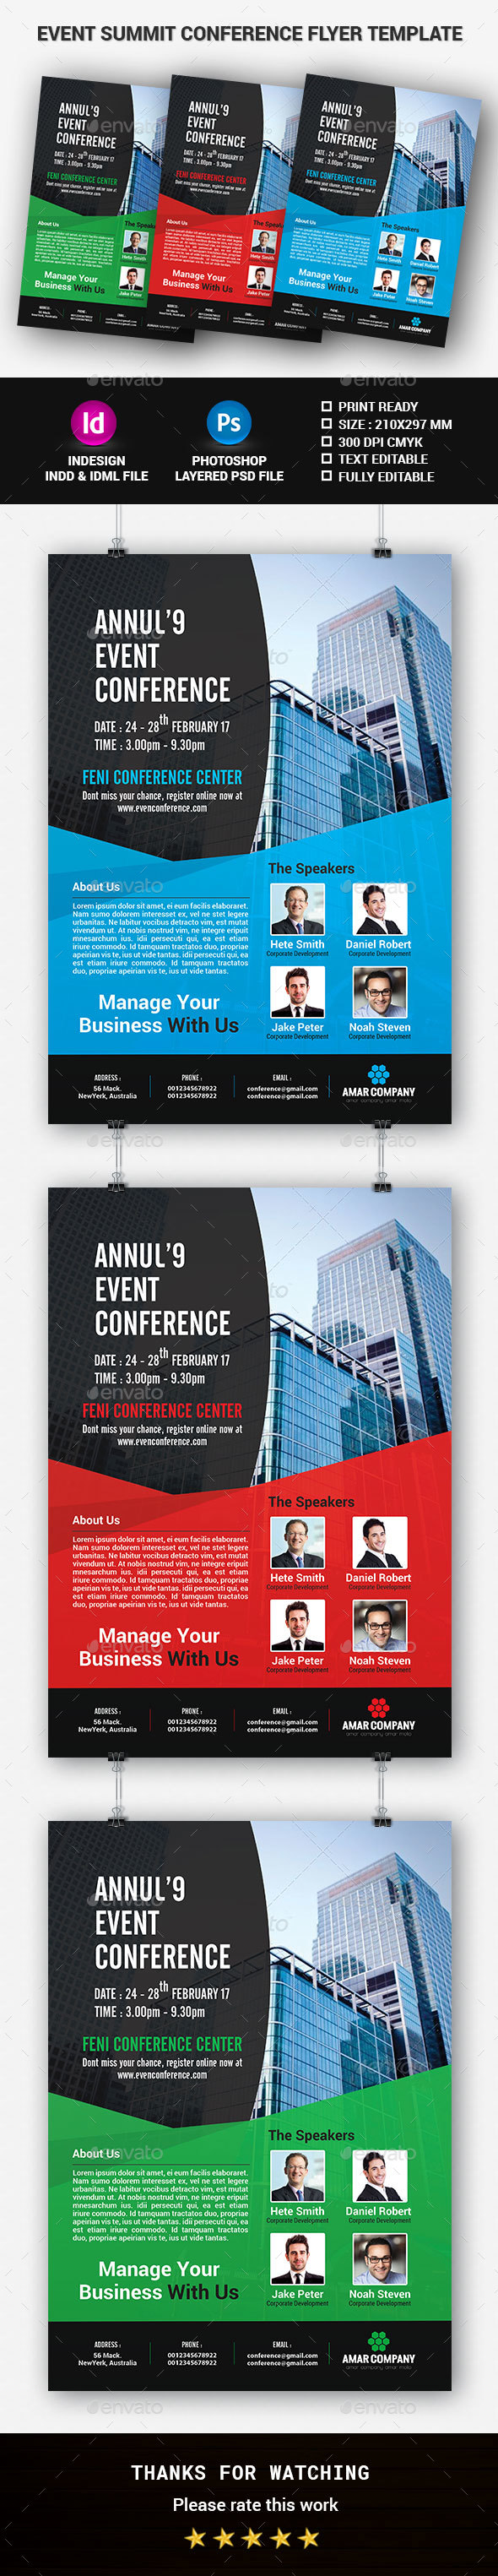 Event Summit Conference Flyer Template - Corporate Flyers